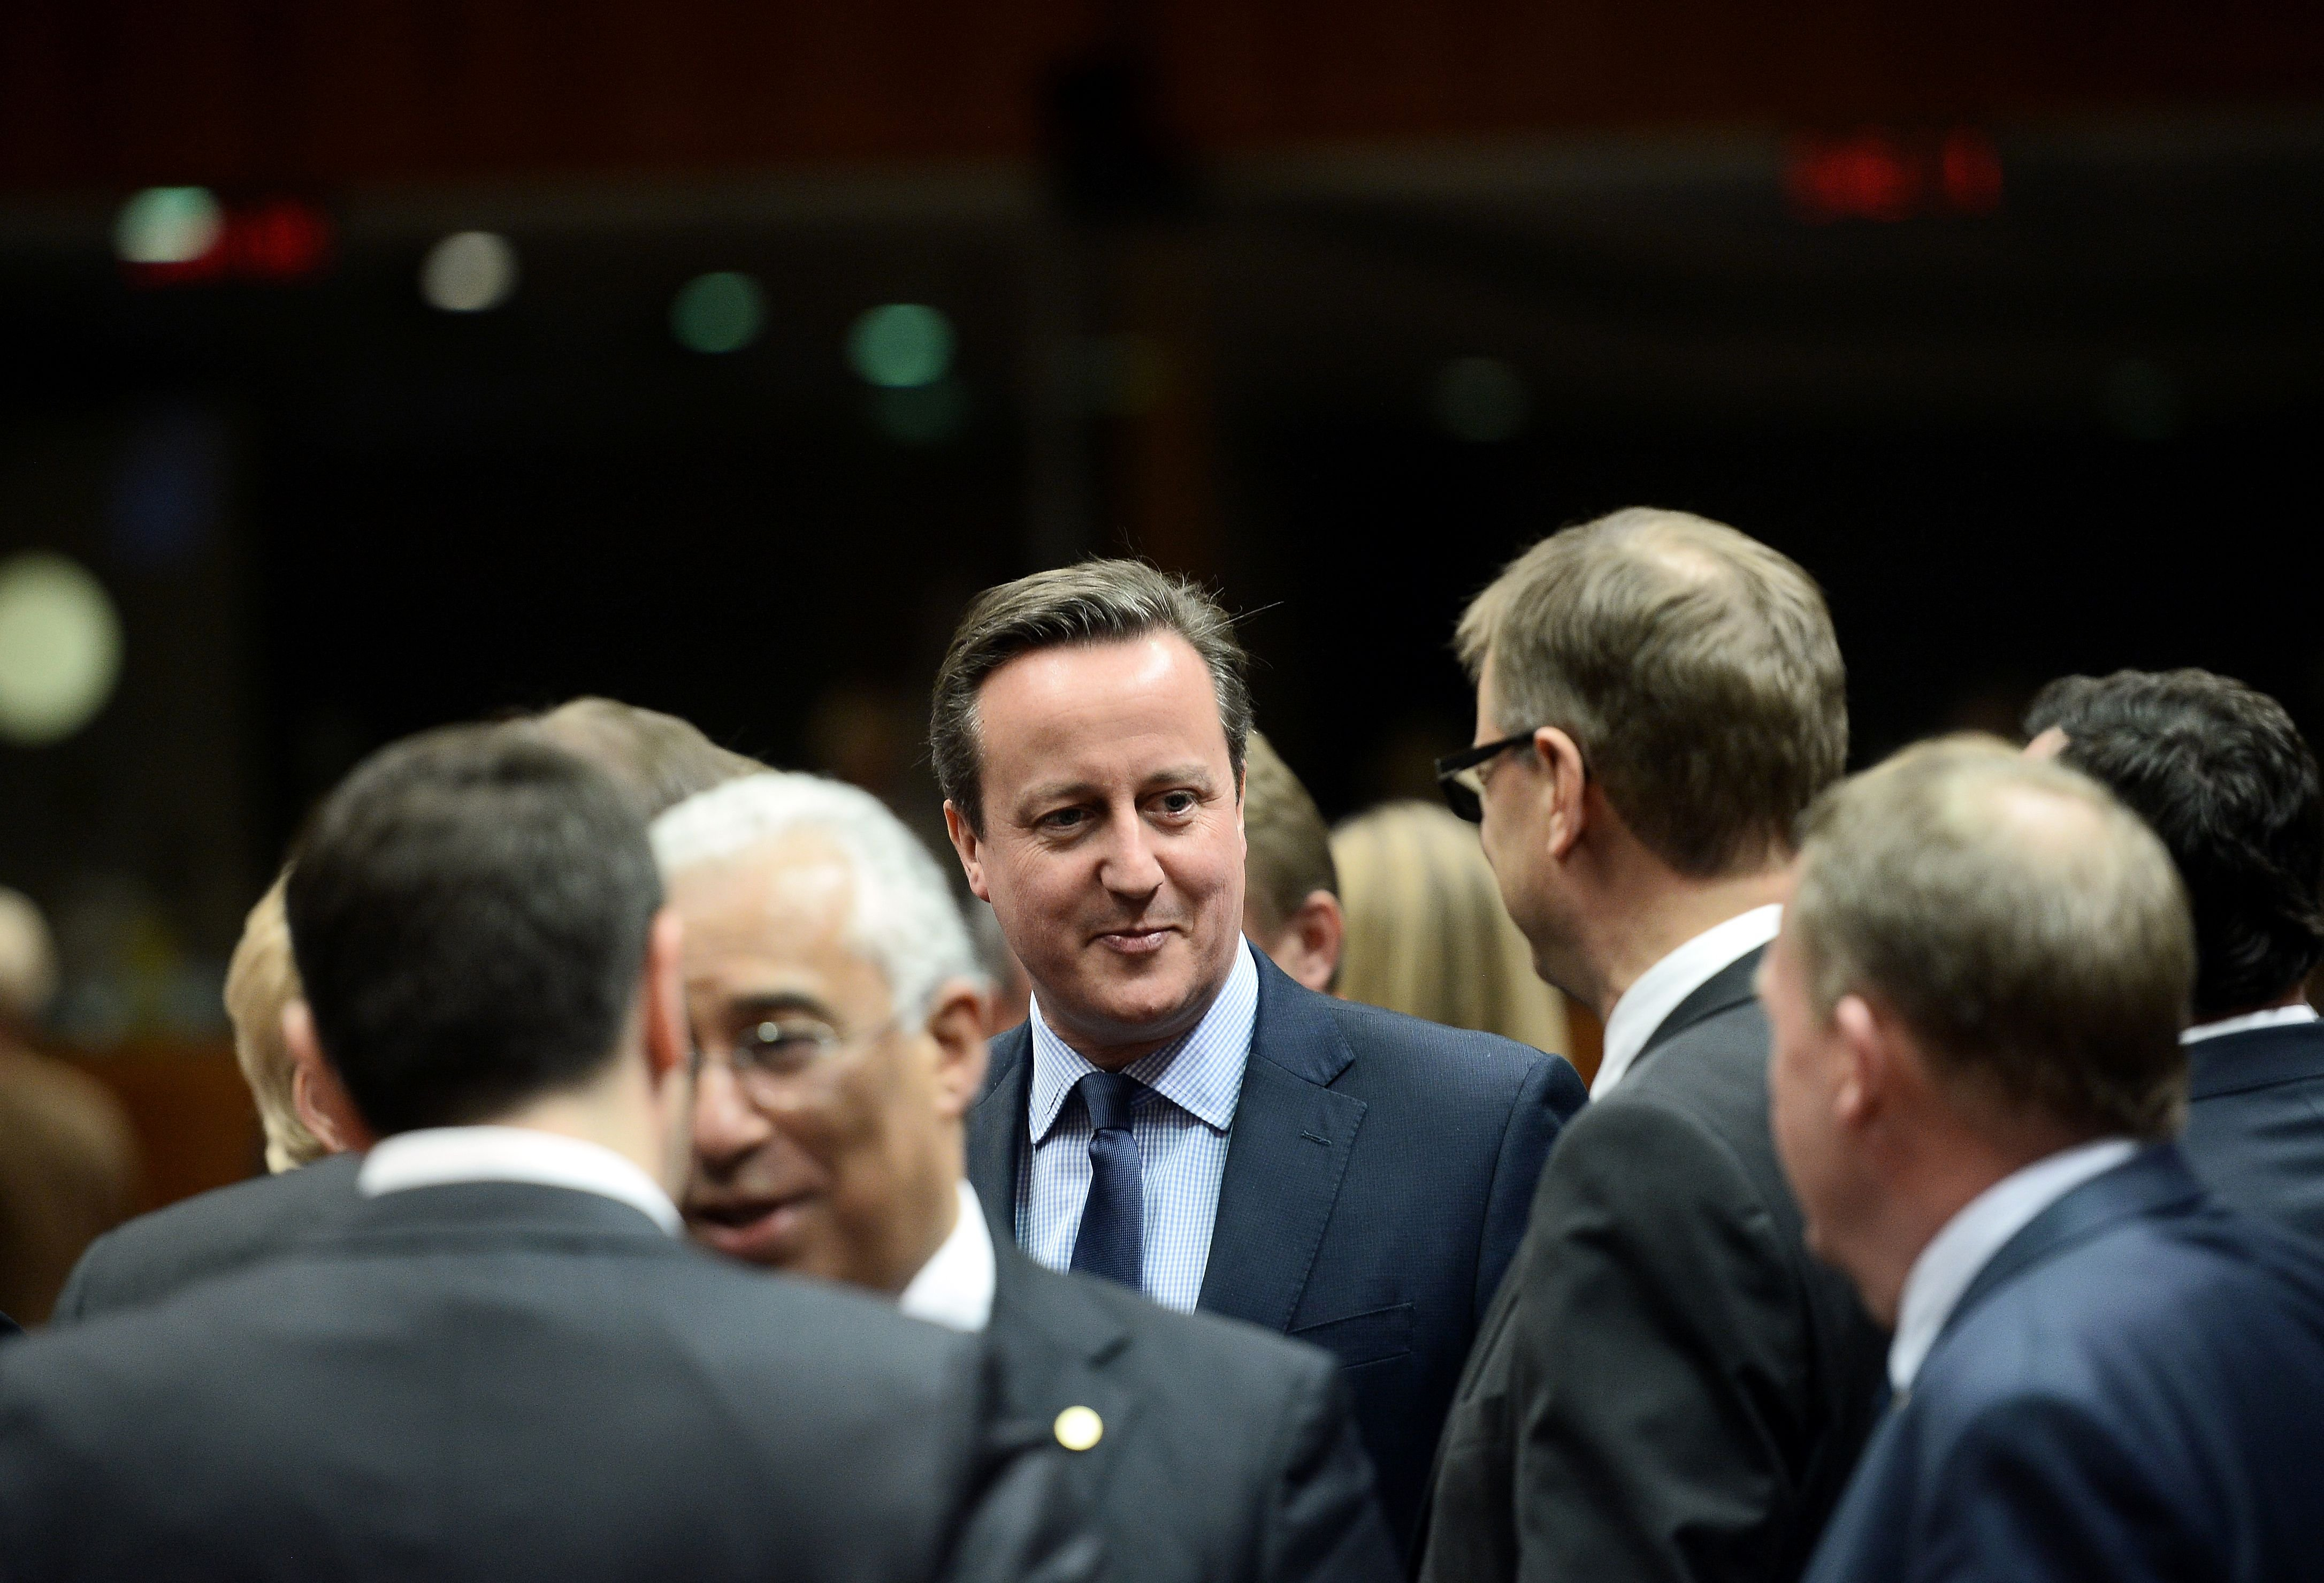 Britain's Prime Minister David Cameron attends an EU summit meeting, at the European Union council in Brussels, on Feb. 18, 2016.